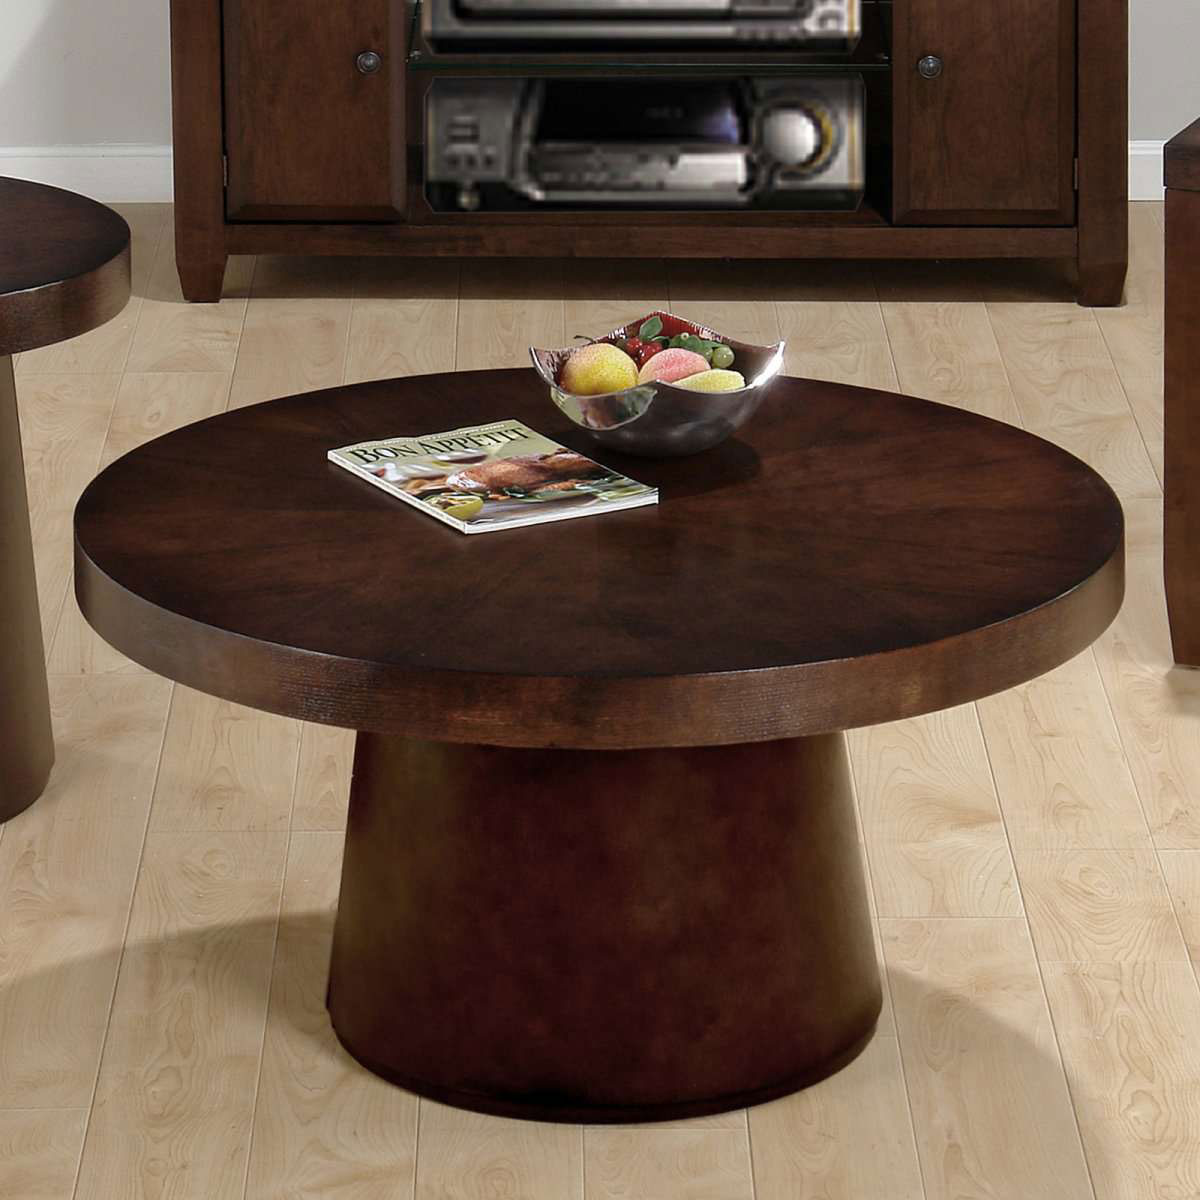 Best Image of: unique round coffee tables unique round coffee tables